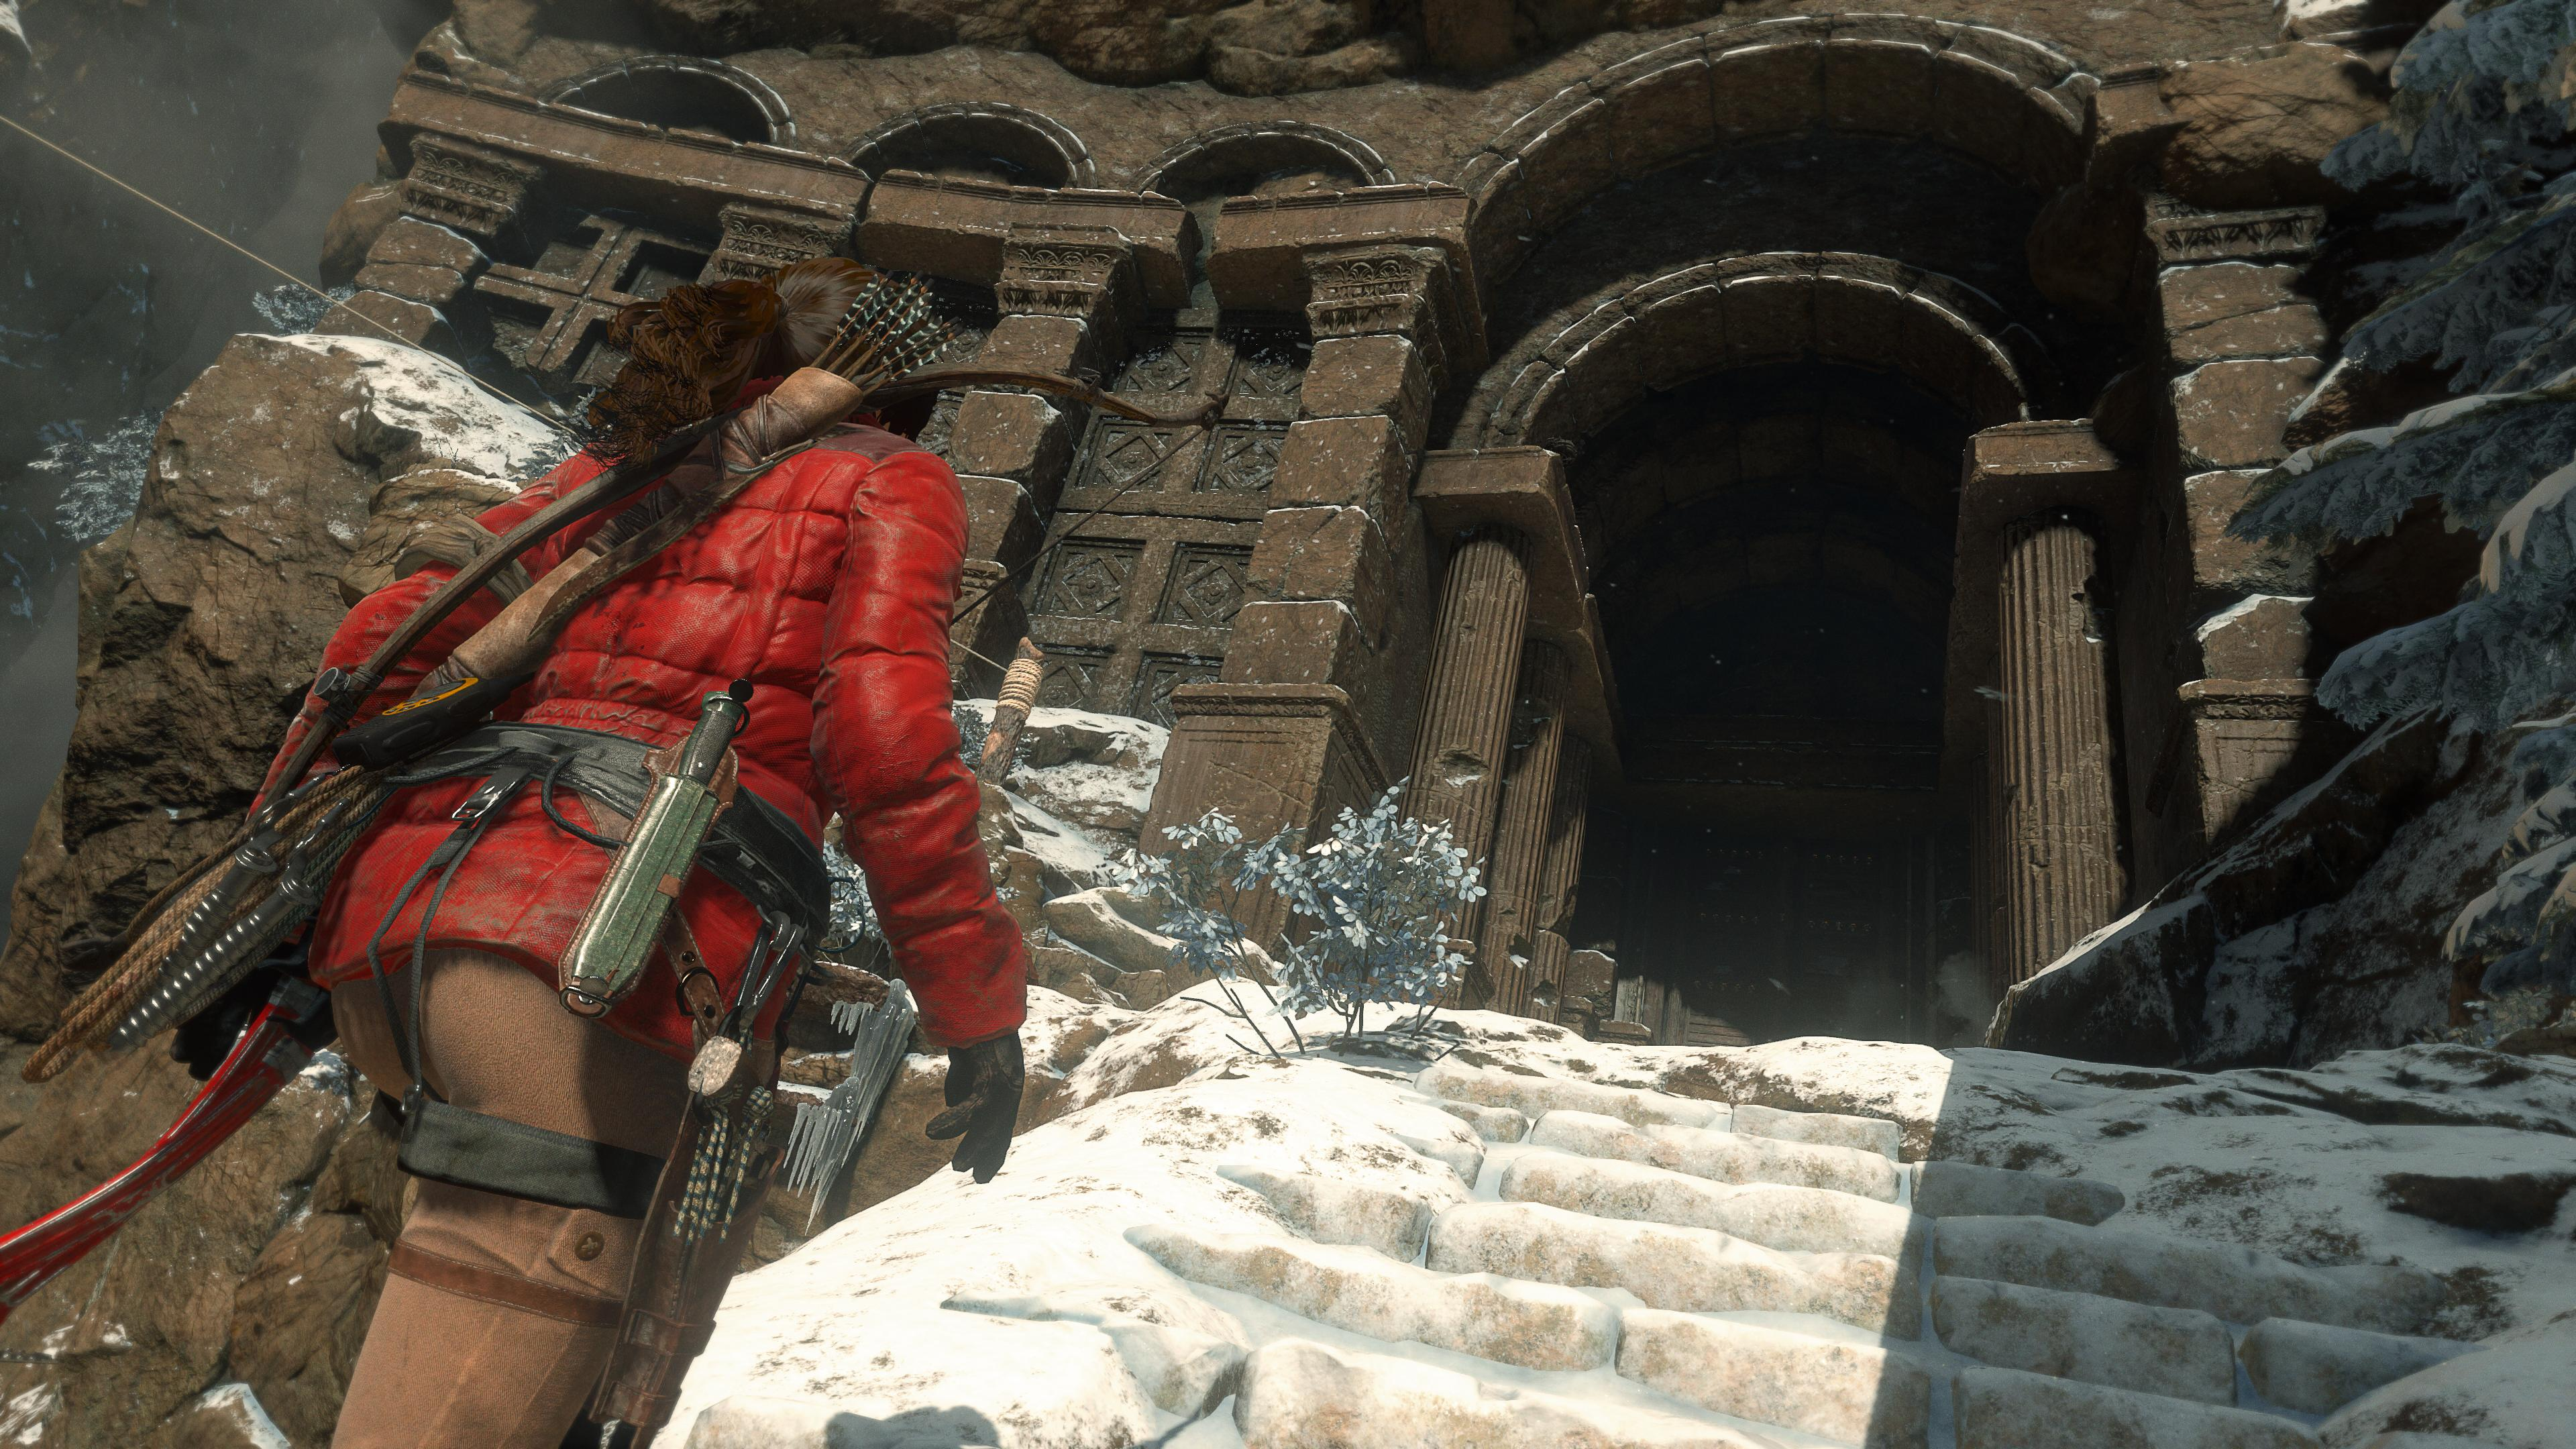 Rise of the Tomb Raider Follows the Tomb Raider: The Ten Thousand Immortals Novel